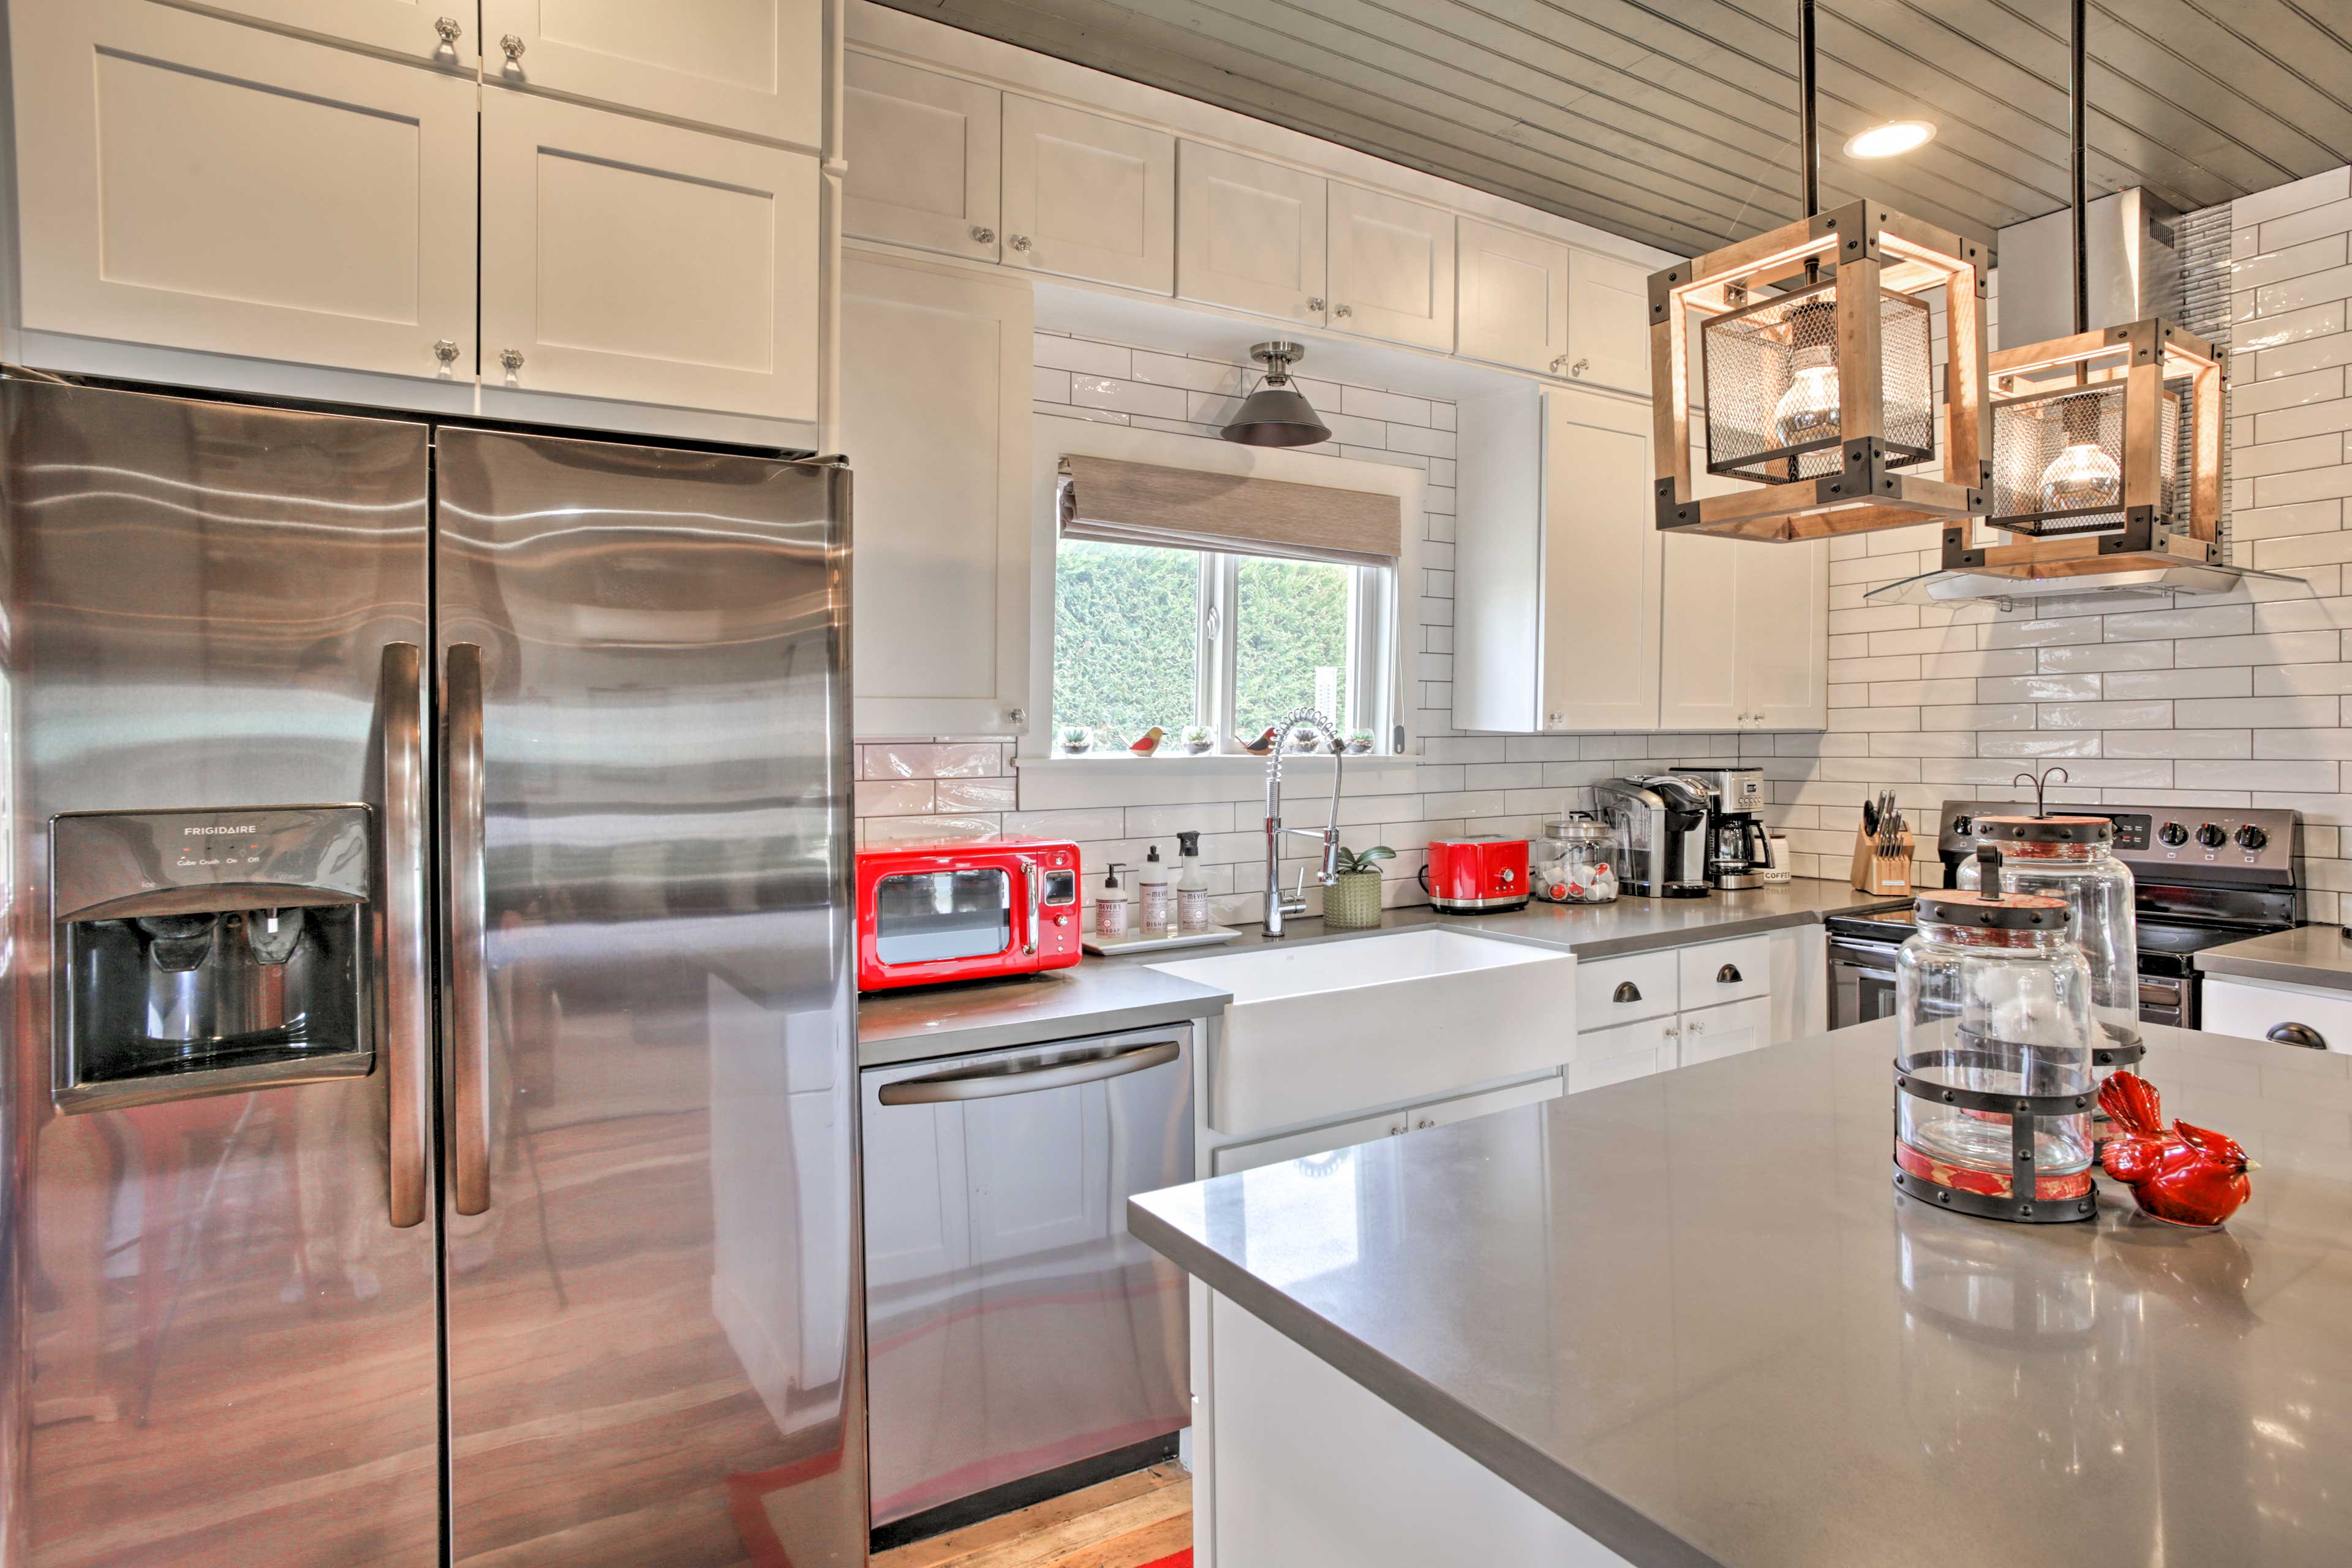 Red accents add vibrant touches of color to the stainless steel surroundings.